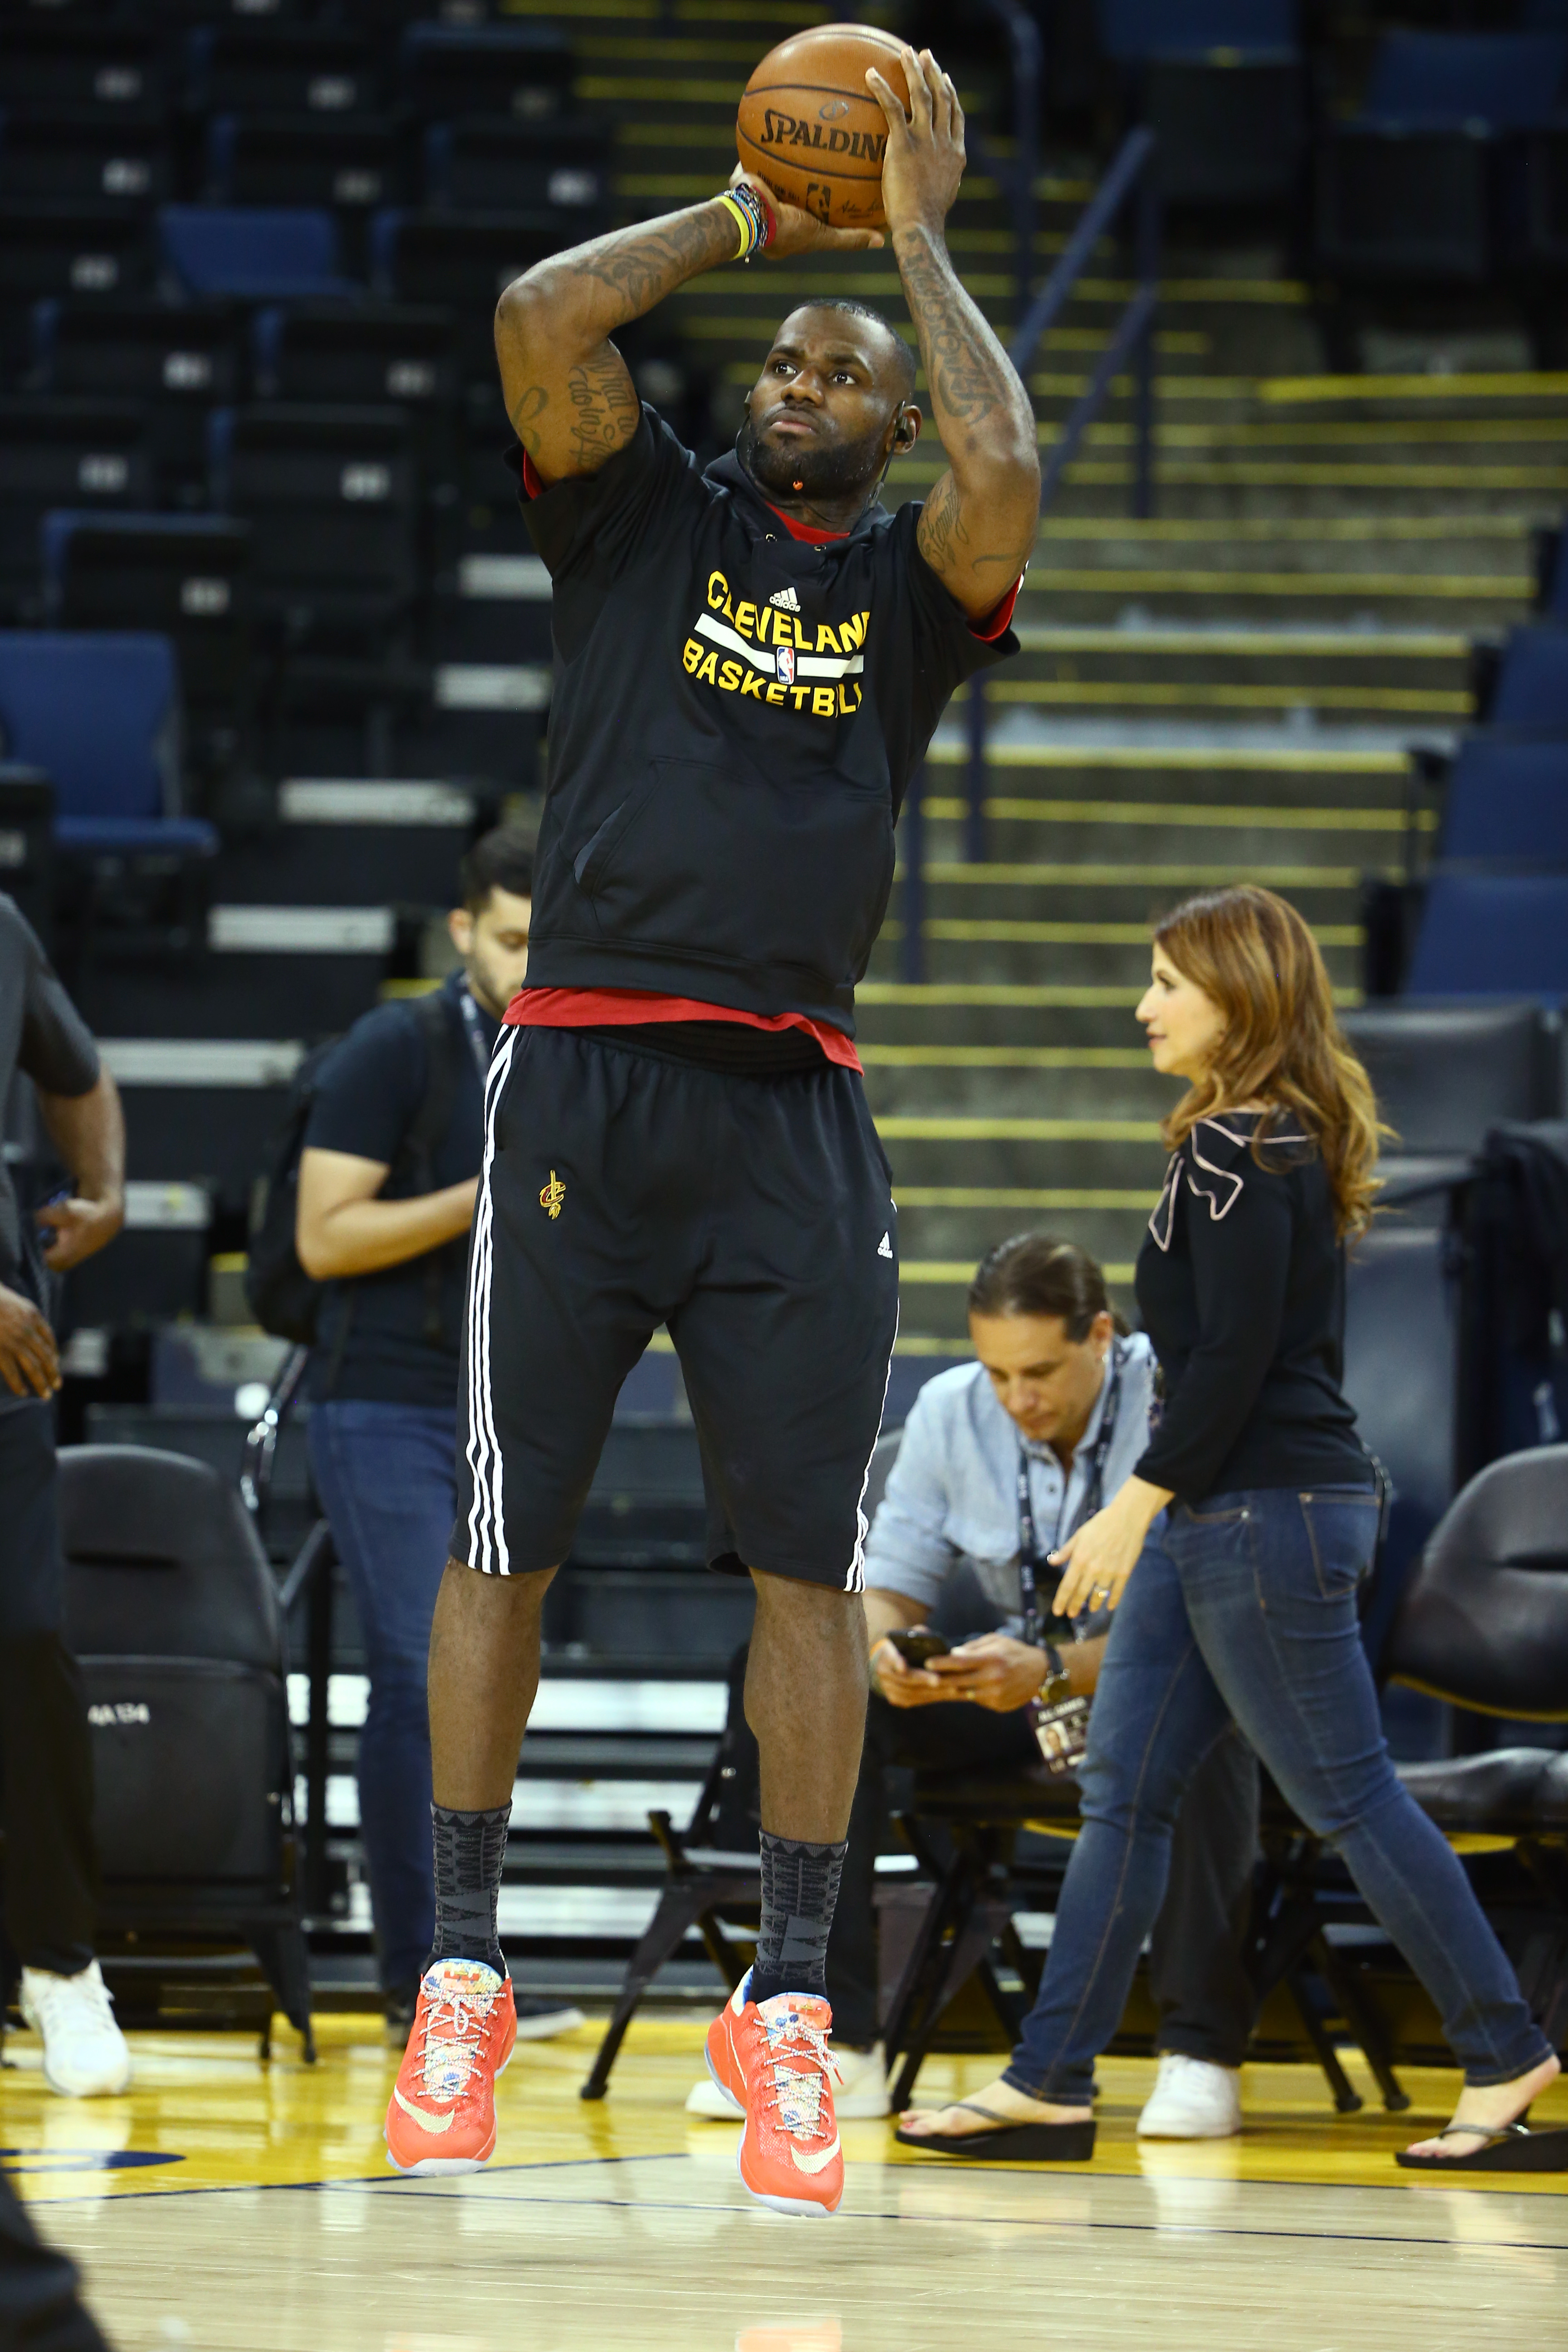 OAKLAND, CA - JUNE 3: LeBron James of the Cleveland Cavaliers shoots during practice and media availability as part of the 2016 NBA Finals on June 3, 2016 at ORACLE Arena in Oakland, California. (Photo by Nathaniel S.Butler/NBAE via Getty Images)